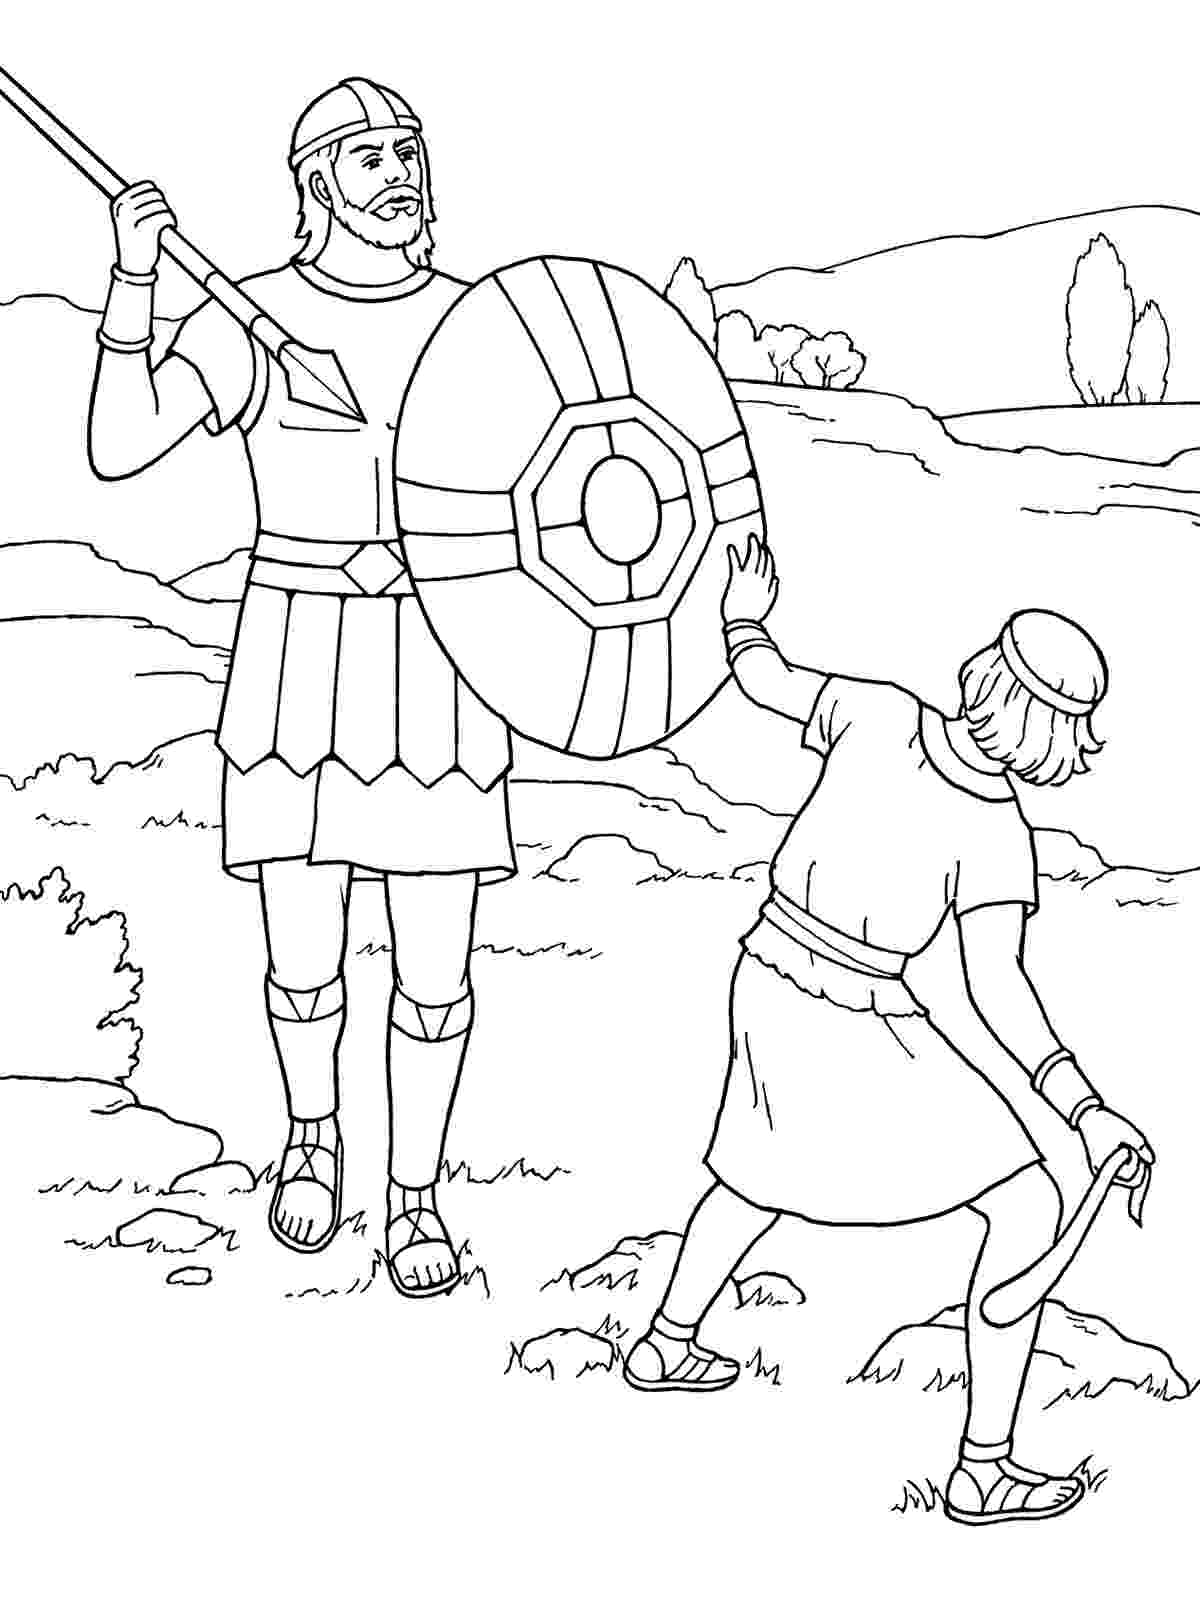 david and goliath coloring page bible story coloring pages rocky mount preschool kids church goliath and page david coloring